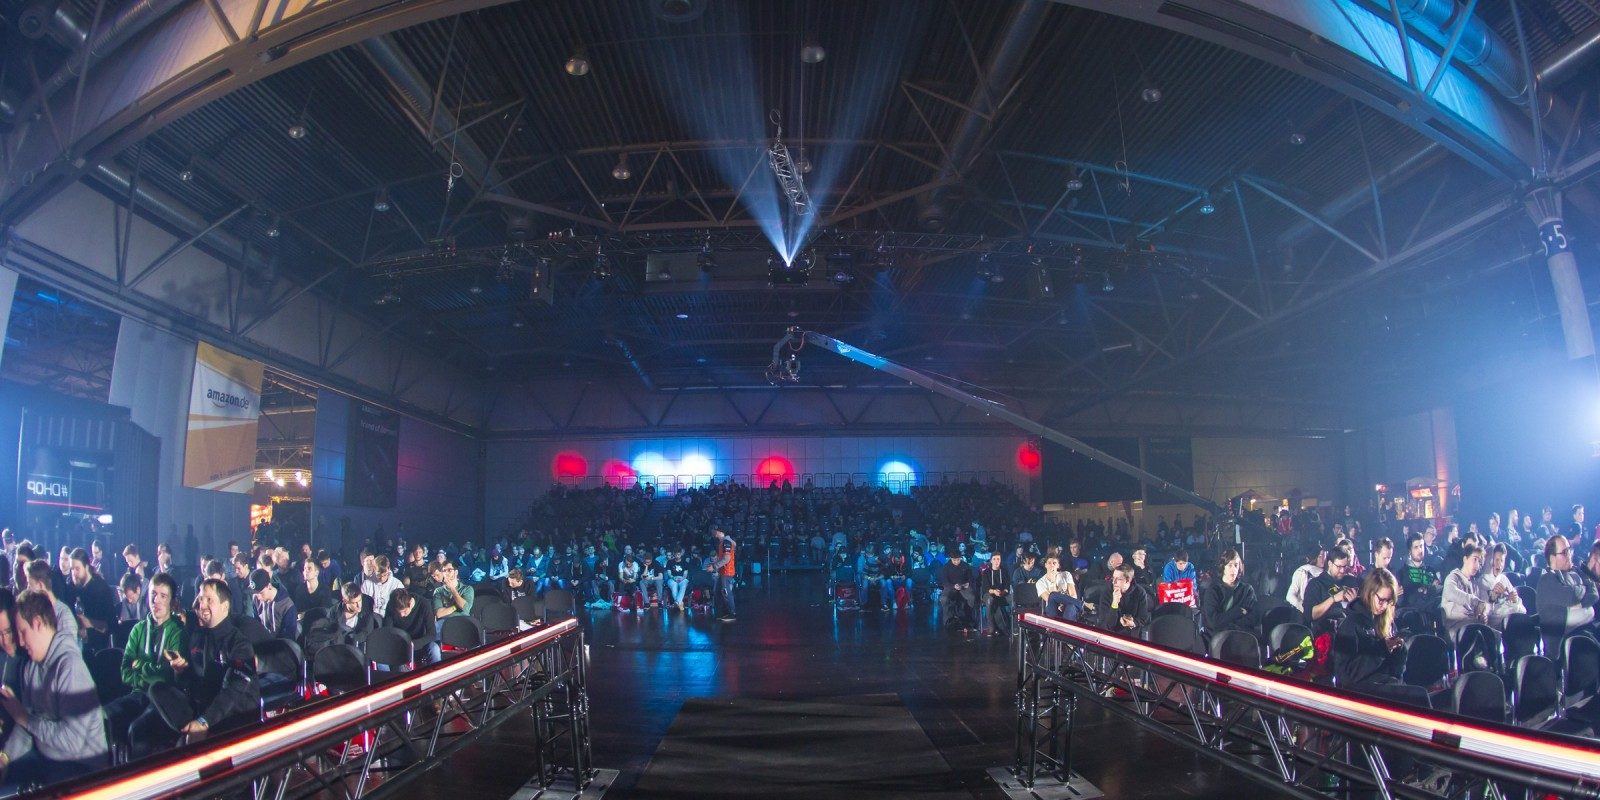 Crowed at the DreamHack Germany